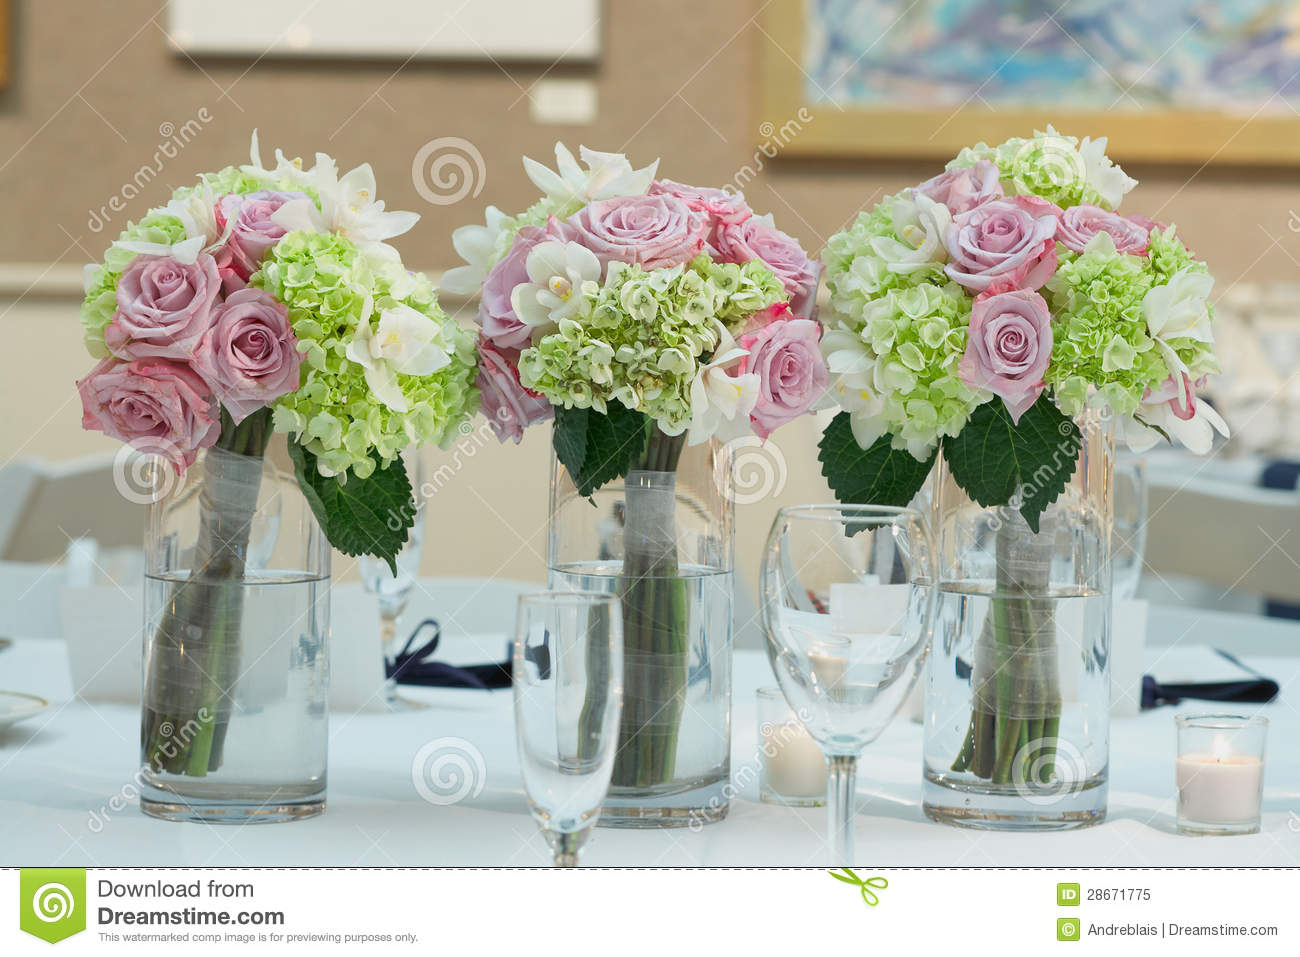 Wedding Bouquet Centerpieces Royalty Free Stock Photo Image 28671775